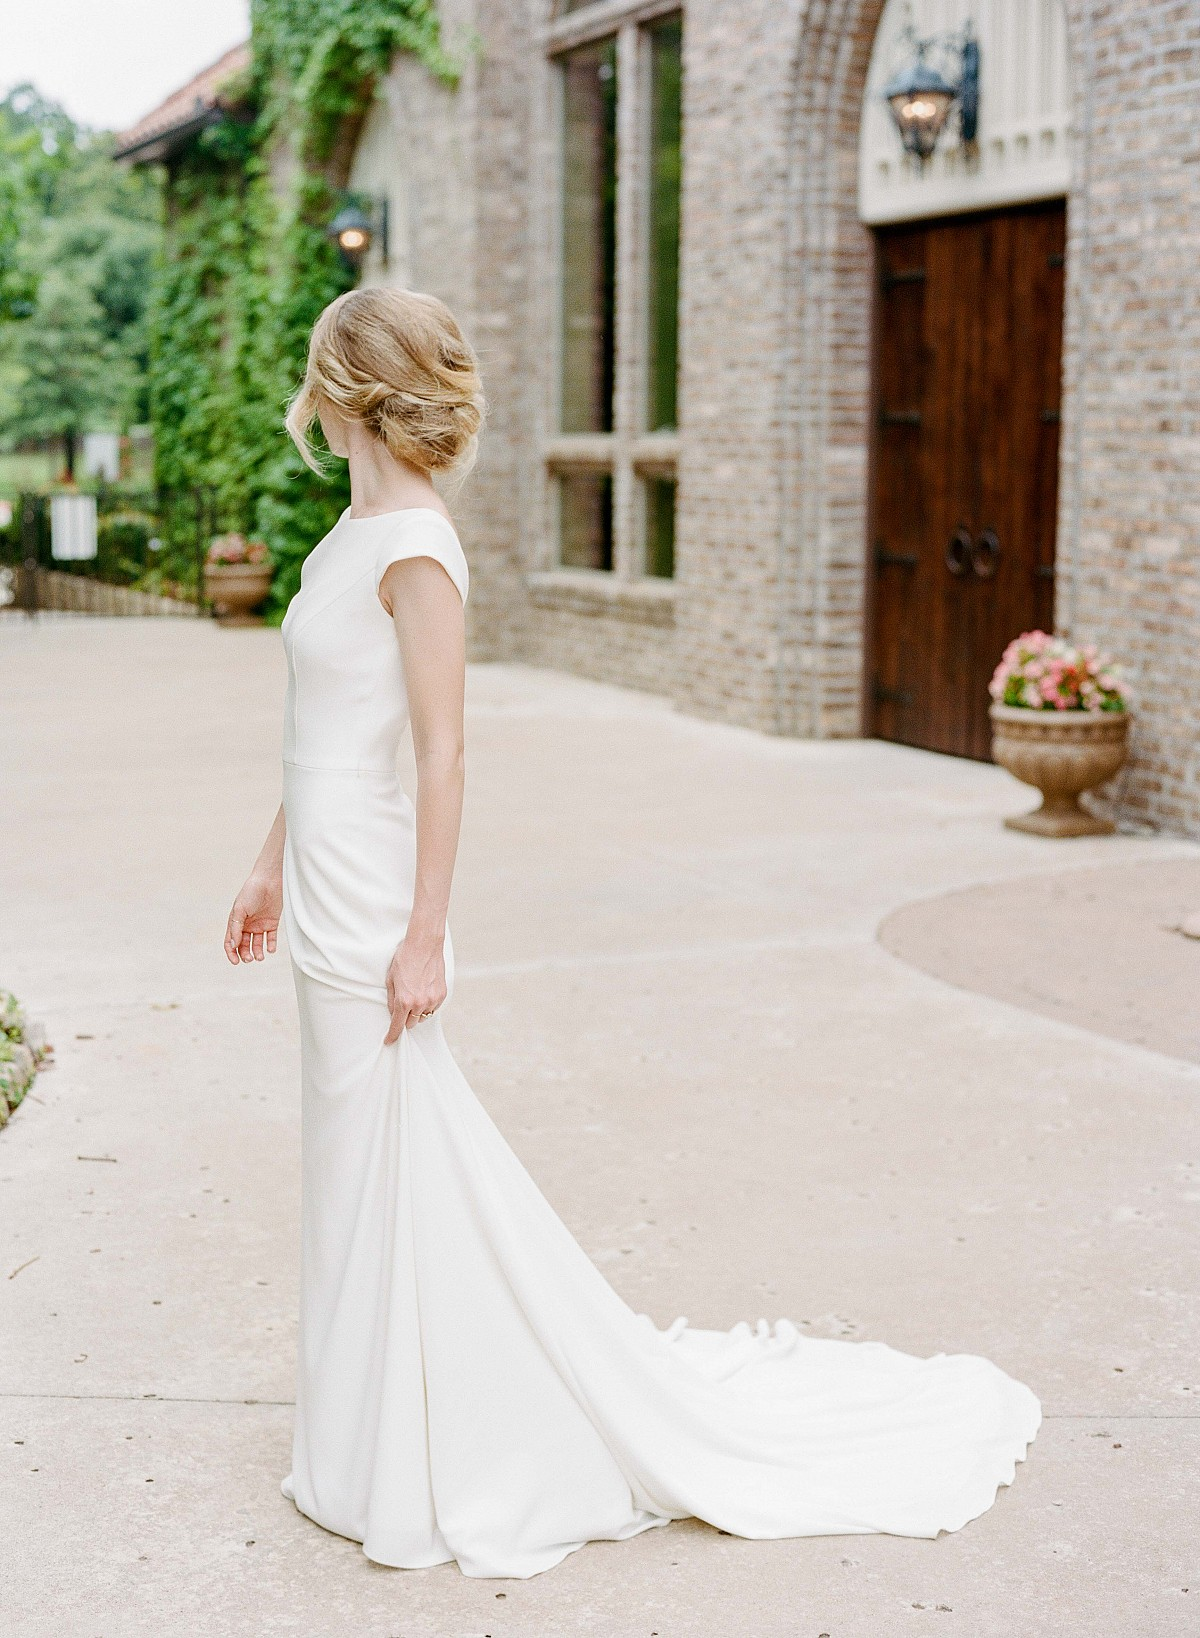 Luminous Bridal Ideas via Amanda Watson Workshops